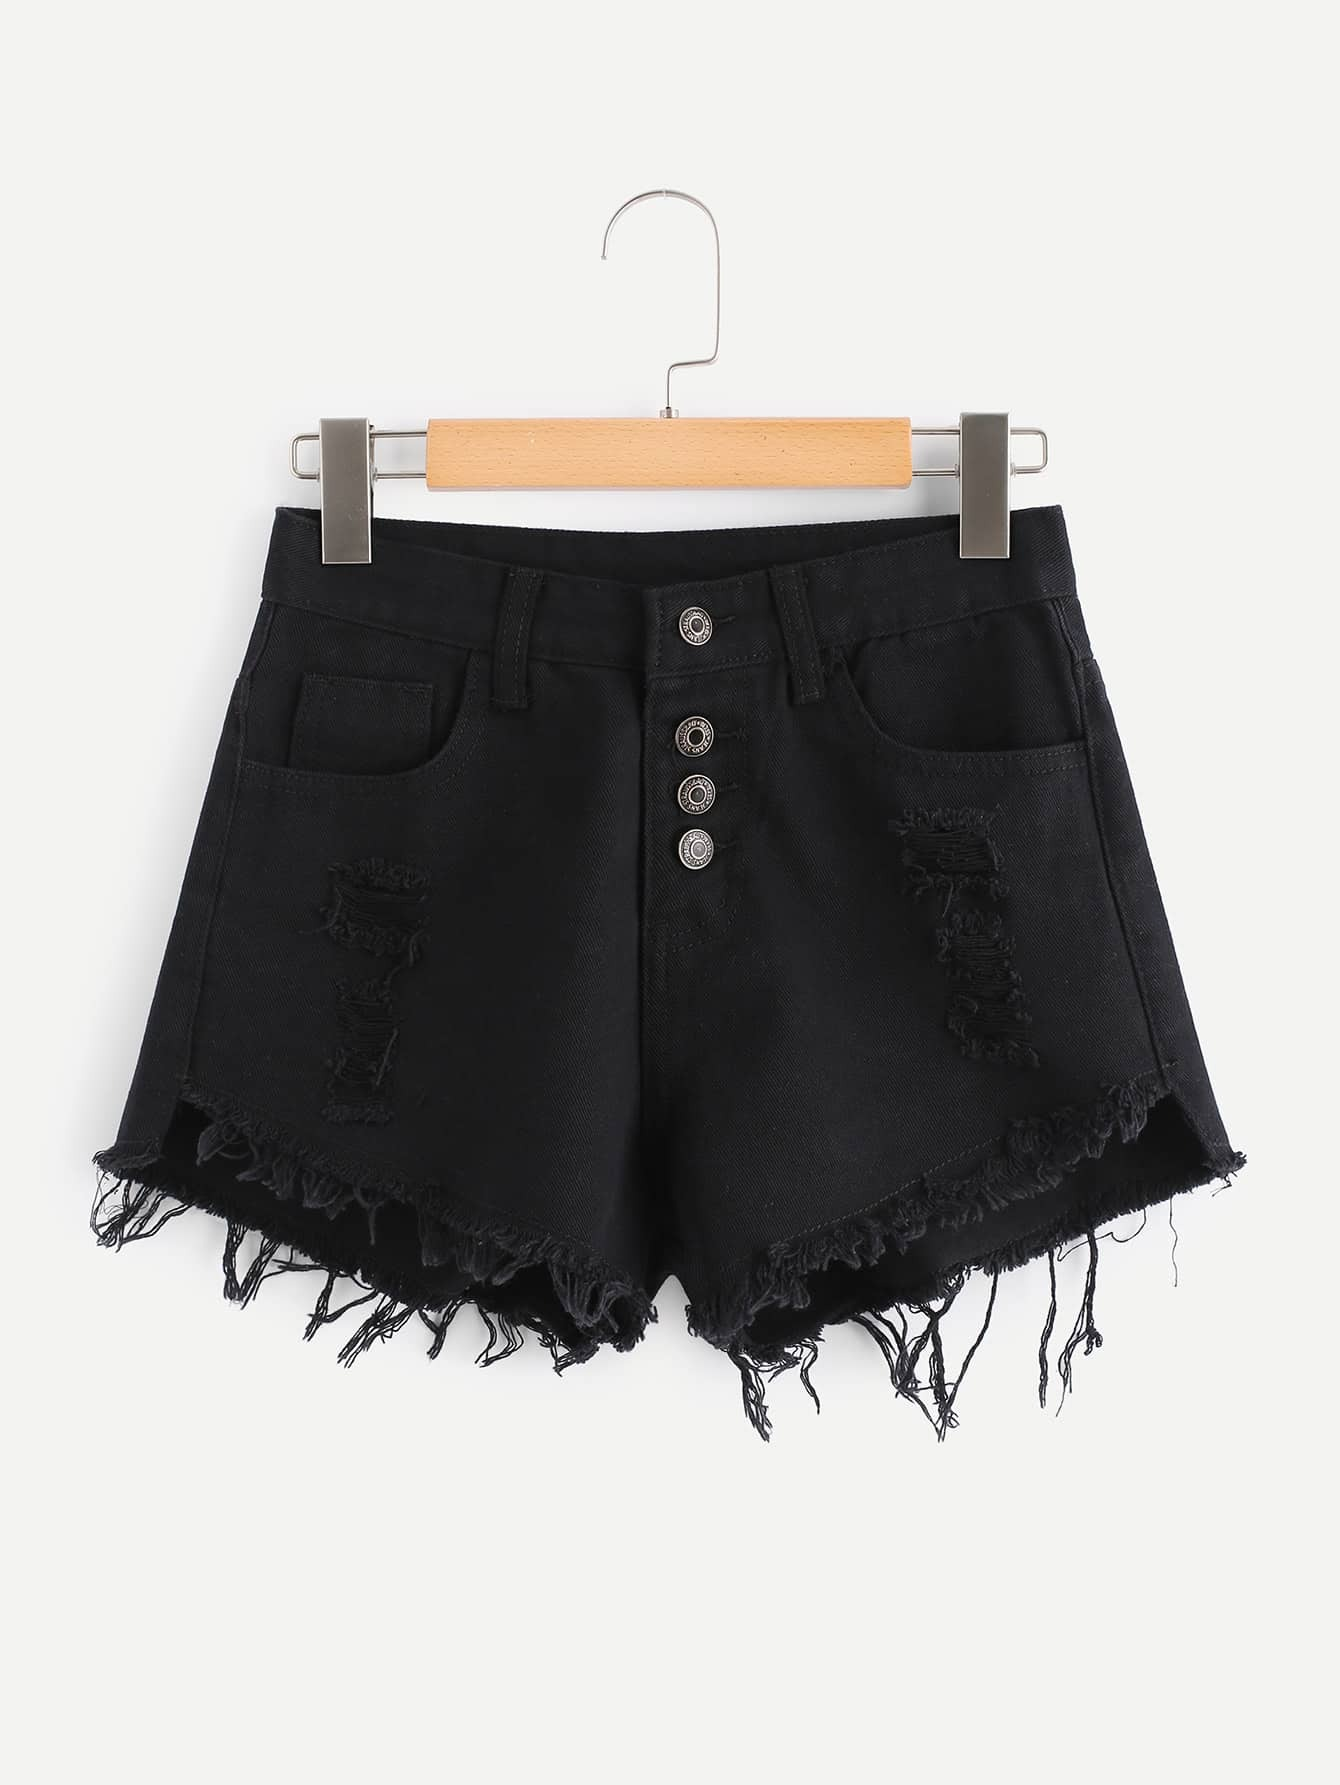 Raw Hem Ripped Button Front Denim Shorts chic mid waist button design ripped denim shorts for women